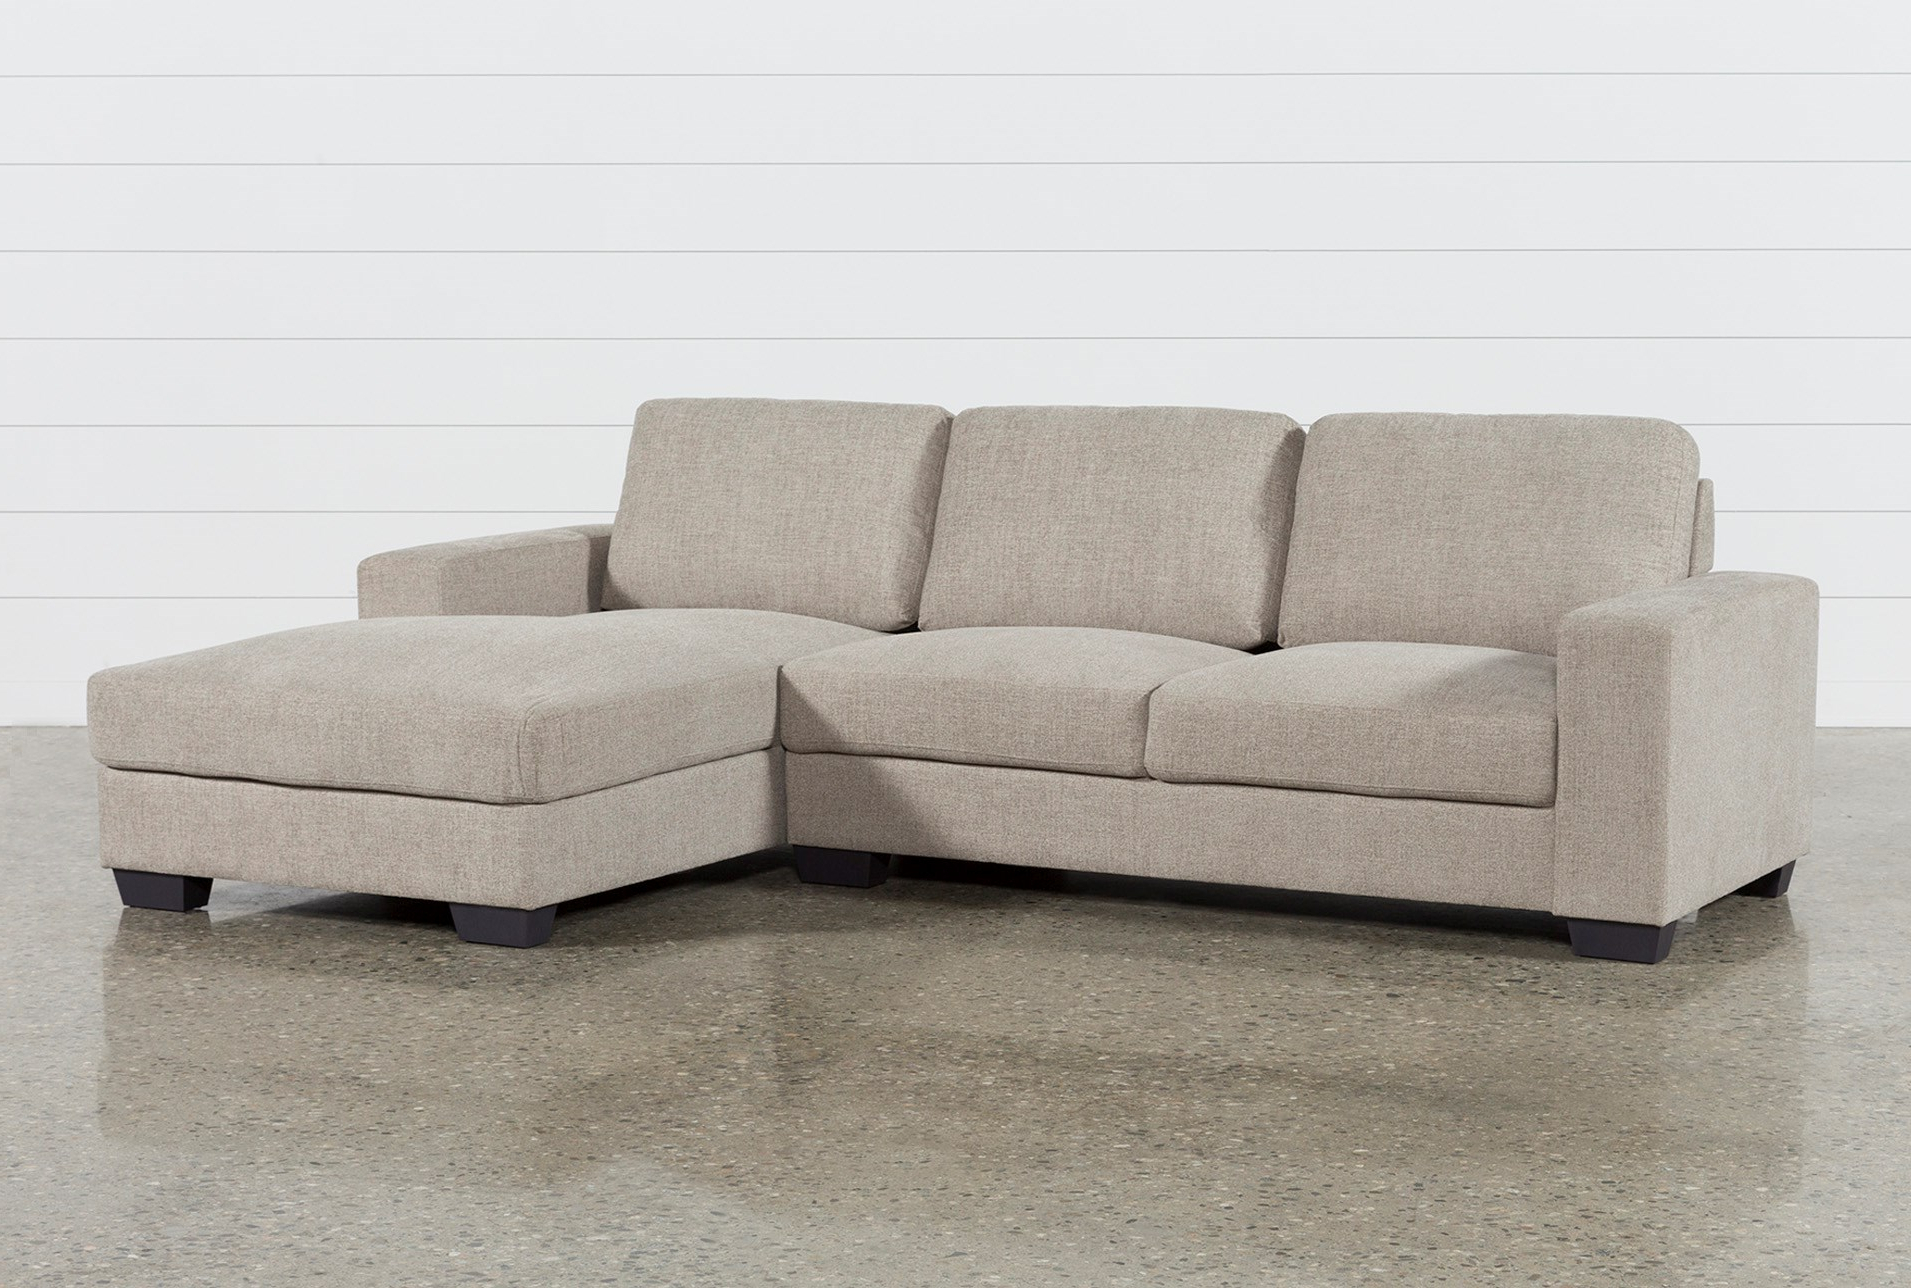 2 Piece Sectional With Chaise – Tidex In Popular Arrowmask 2 Piece Sectionals With Raf Chaise (View 1 of 20)